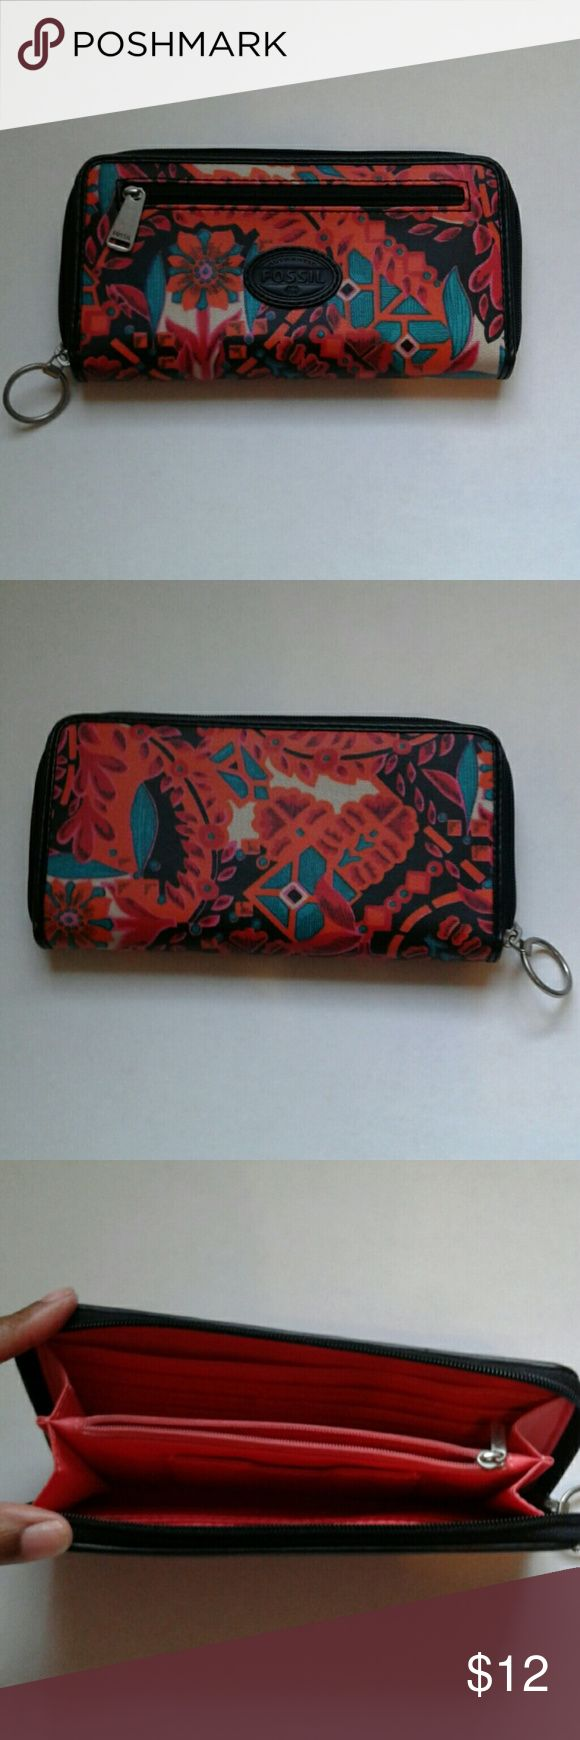 Fossil Wallet Fossil Wallet with a zipper pocket on the front  Colors: black, orange, green.  Small spot in last picture.  Good condition Fossil Accessories